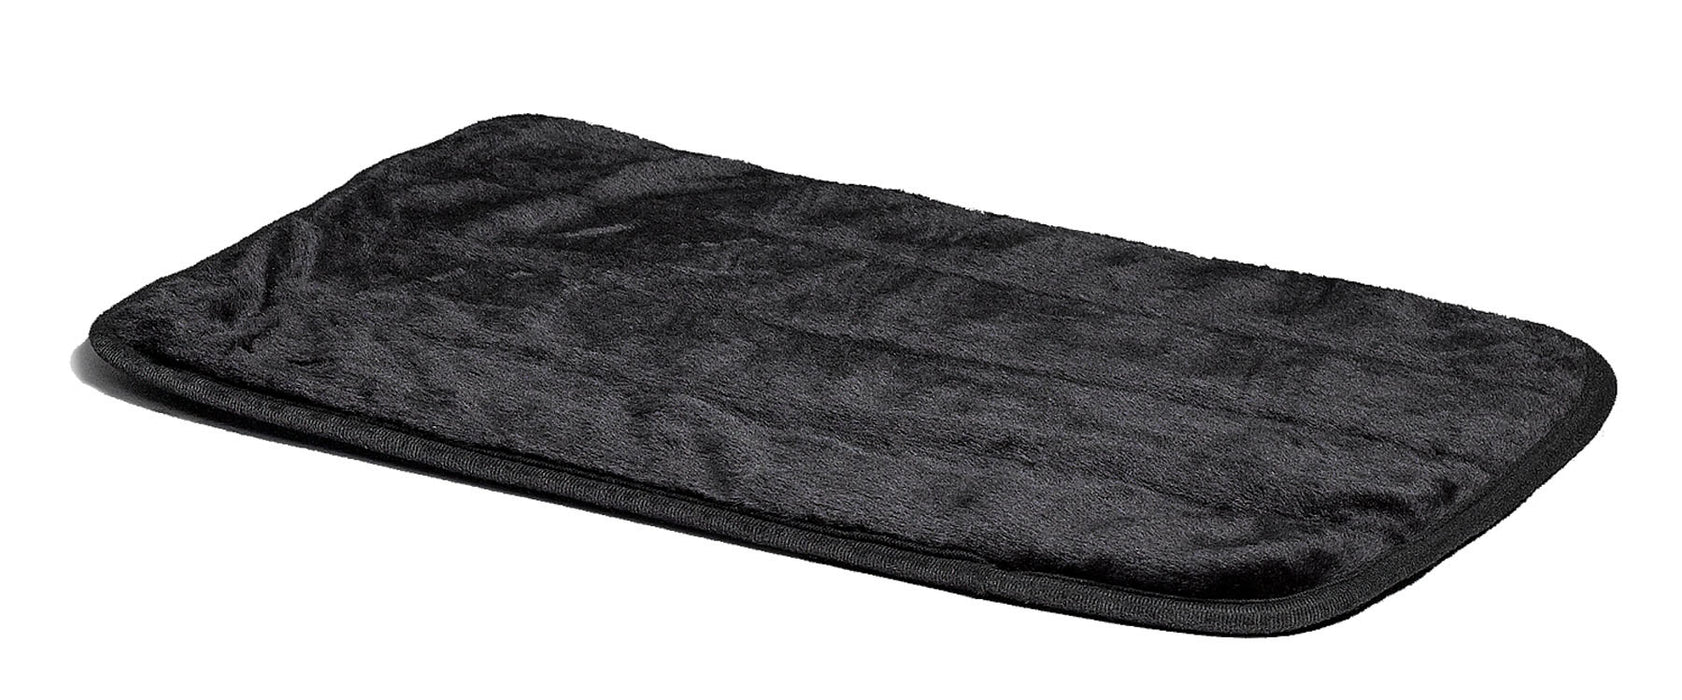 "Midwest Deluxe Pet Mat, 43""x28"", Black"